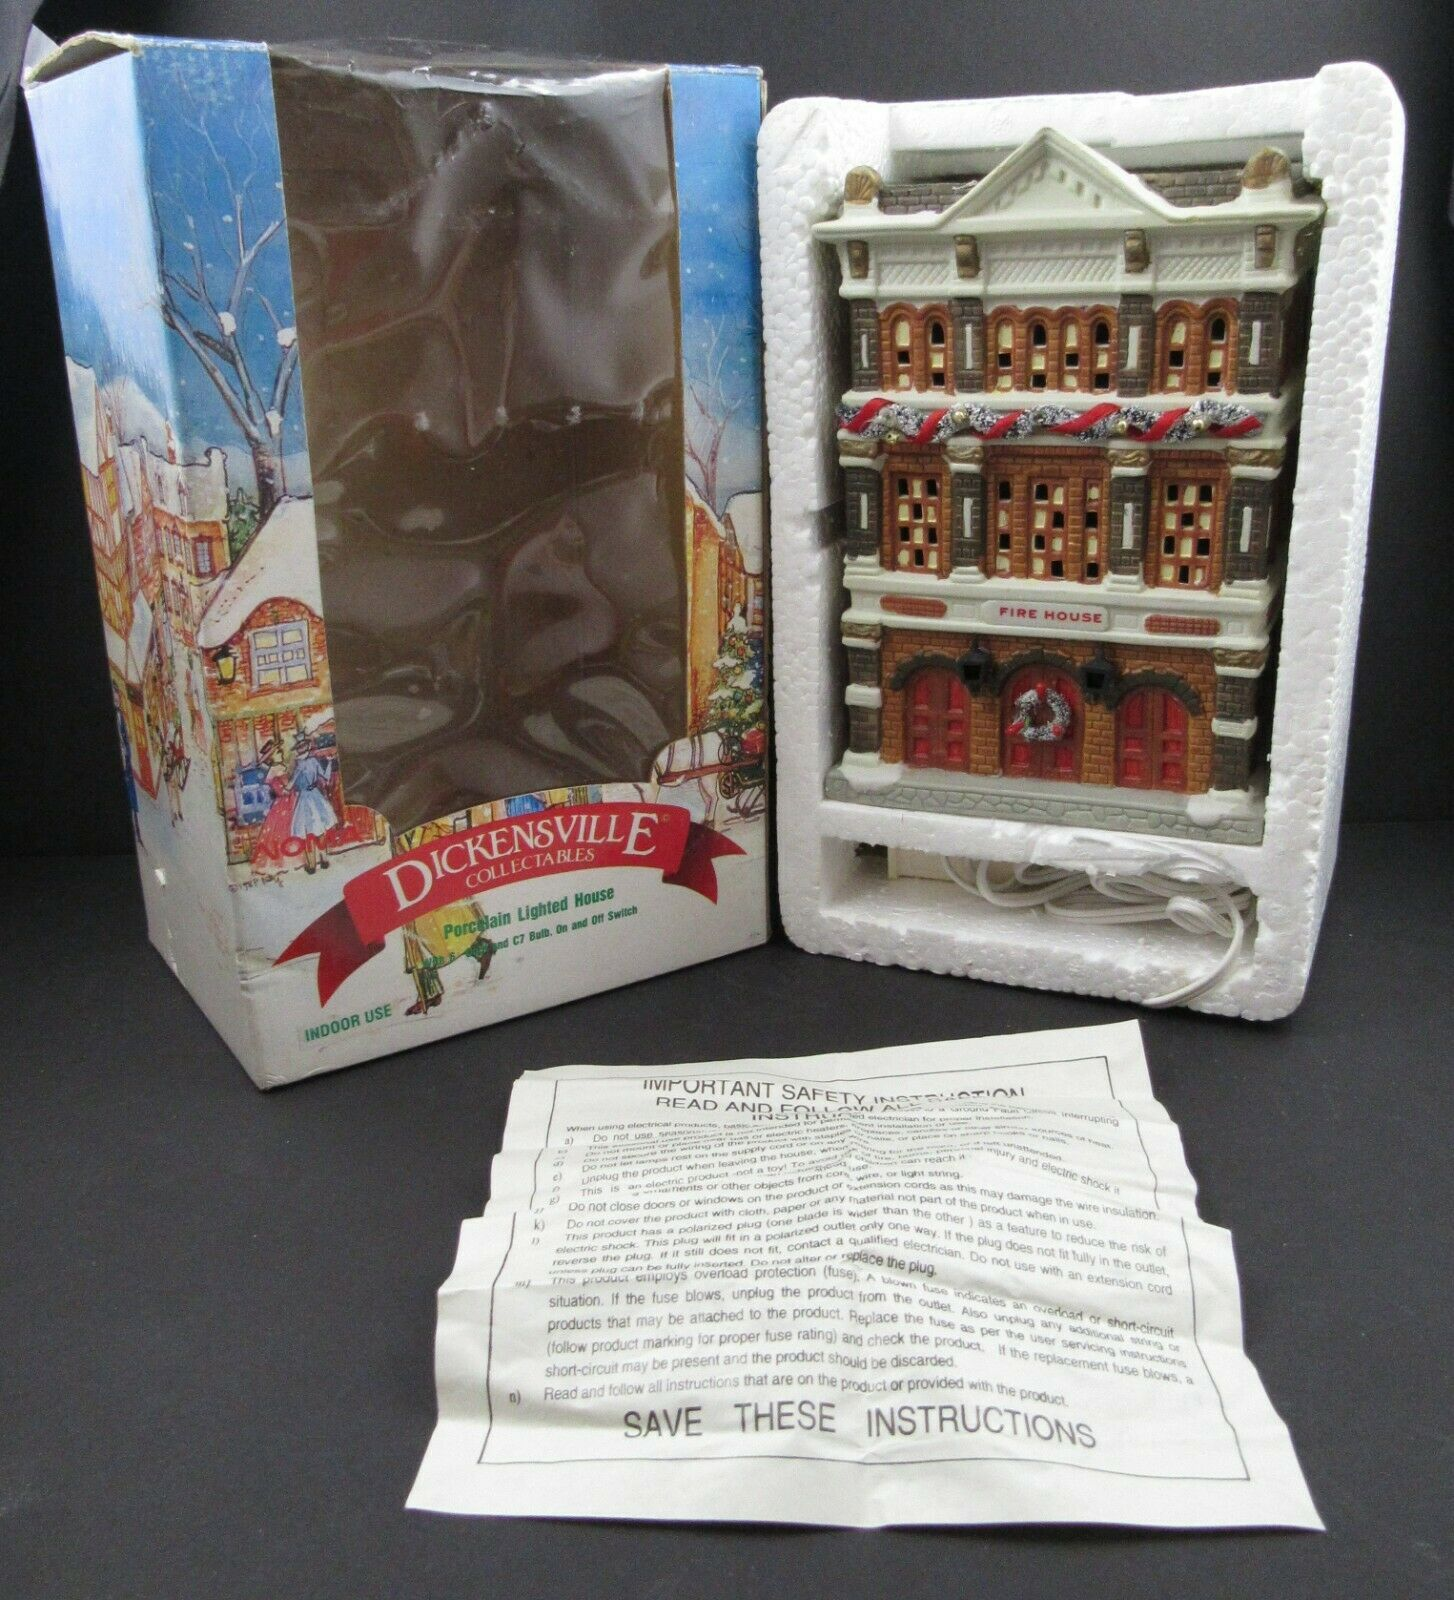 NOMA Dickensville Lighted Porcelain Collection Fire House in Box 28413 - $28.98